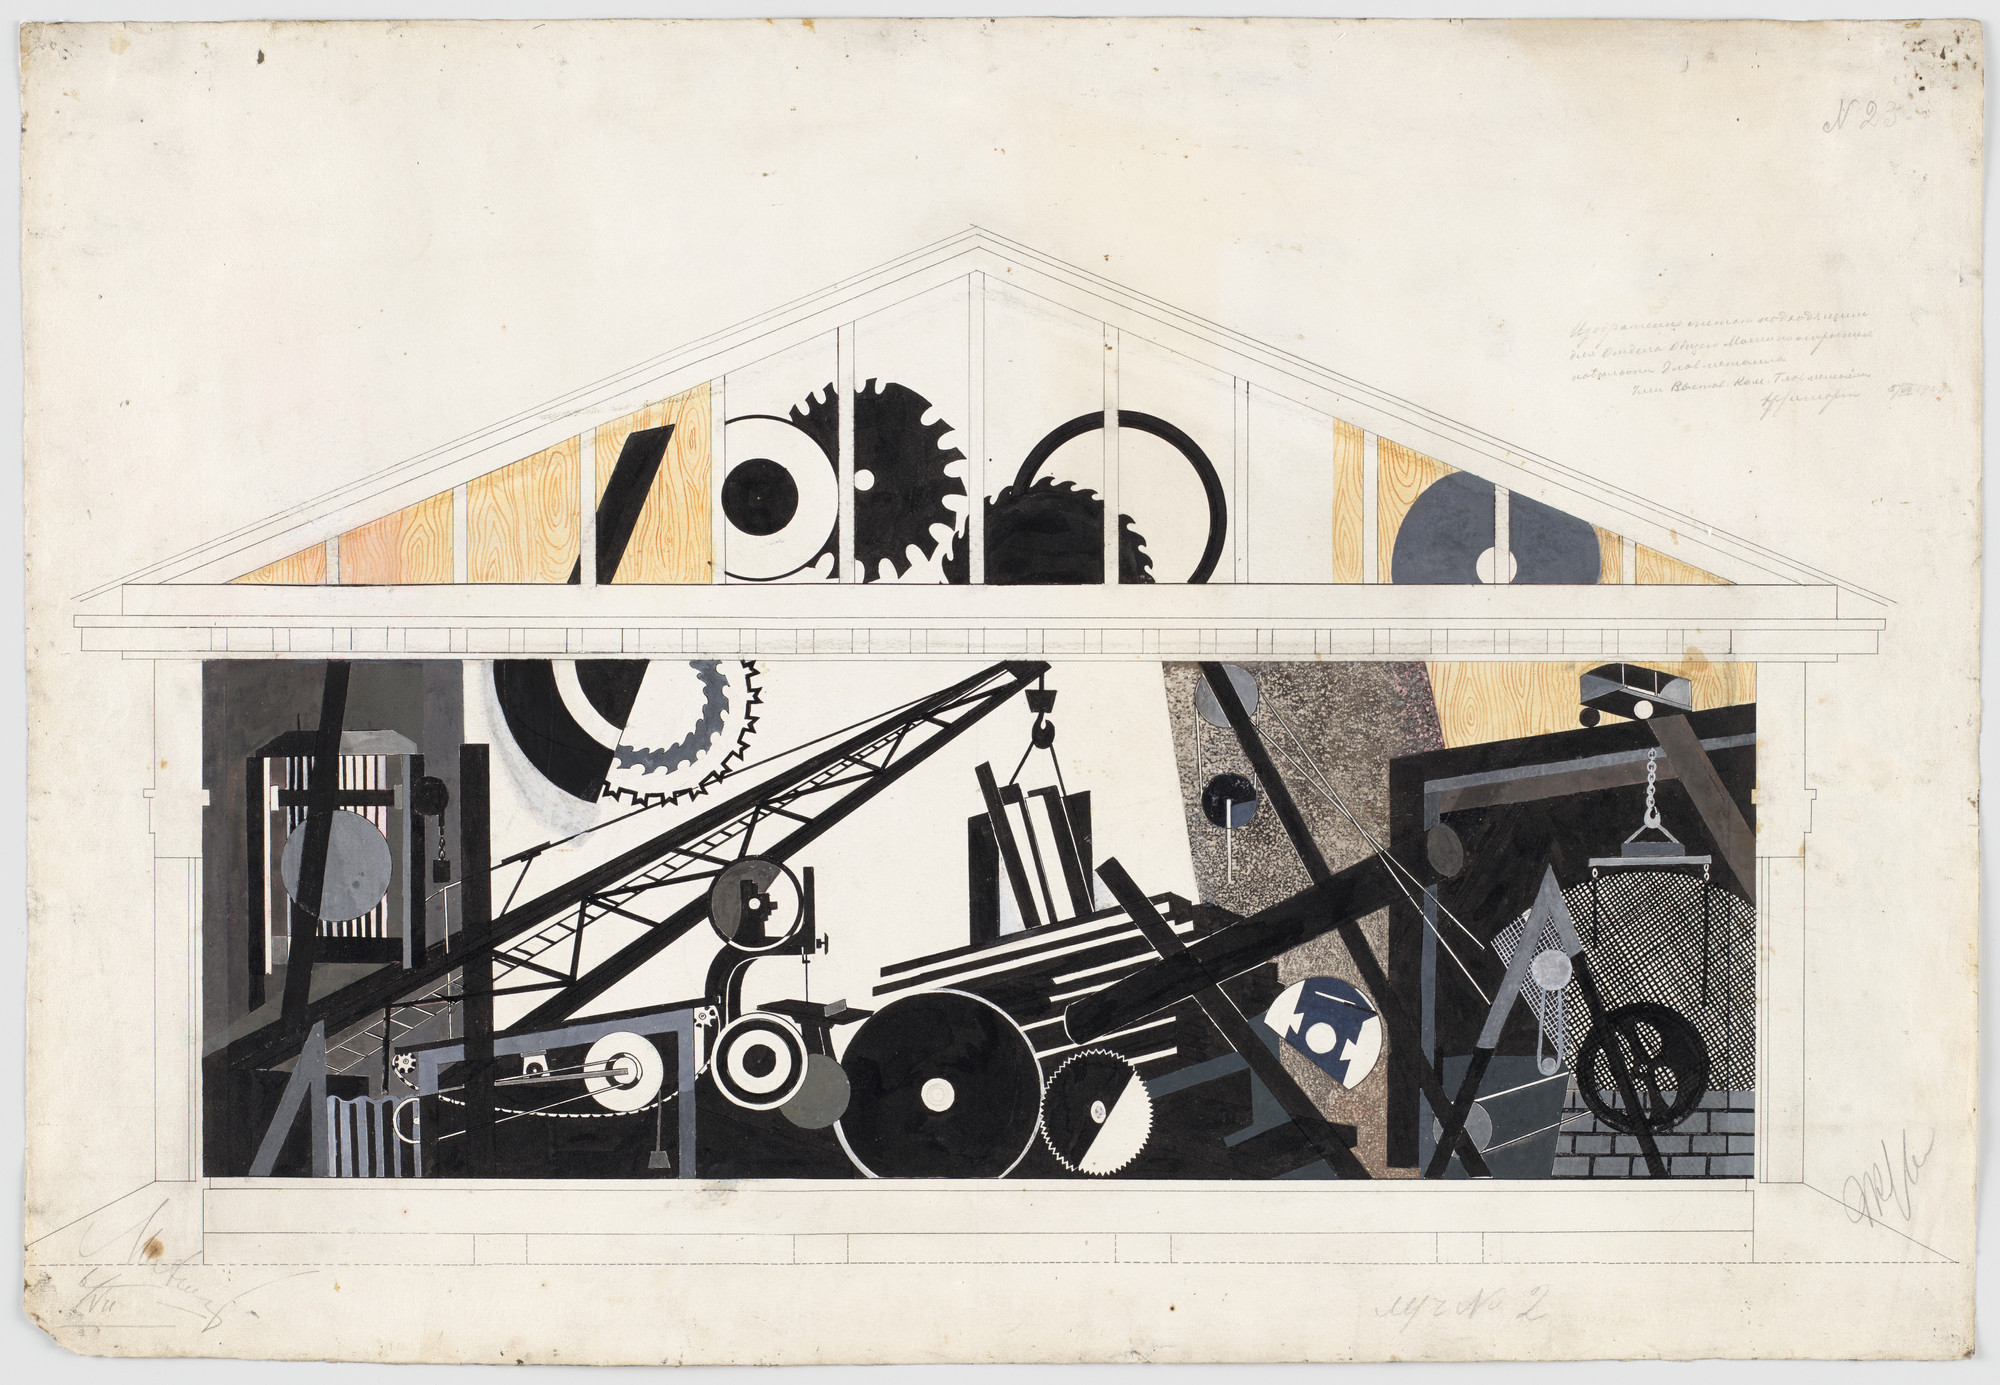 Alexandra Exter. Study for Mechanical Engineering Pavilion mural at the All-Russian Exhibition for Agriculture and Home Industries (Vserossiiskaia sel'skokhoziaistvennaia i kustarno-promyshlennaia vystavka), Central Park of Culture and Leisure (now Gorky Park), Moscow. c. 1923